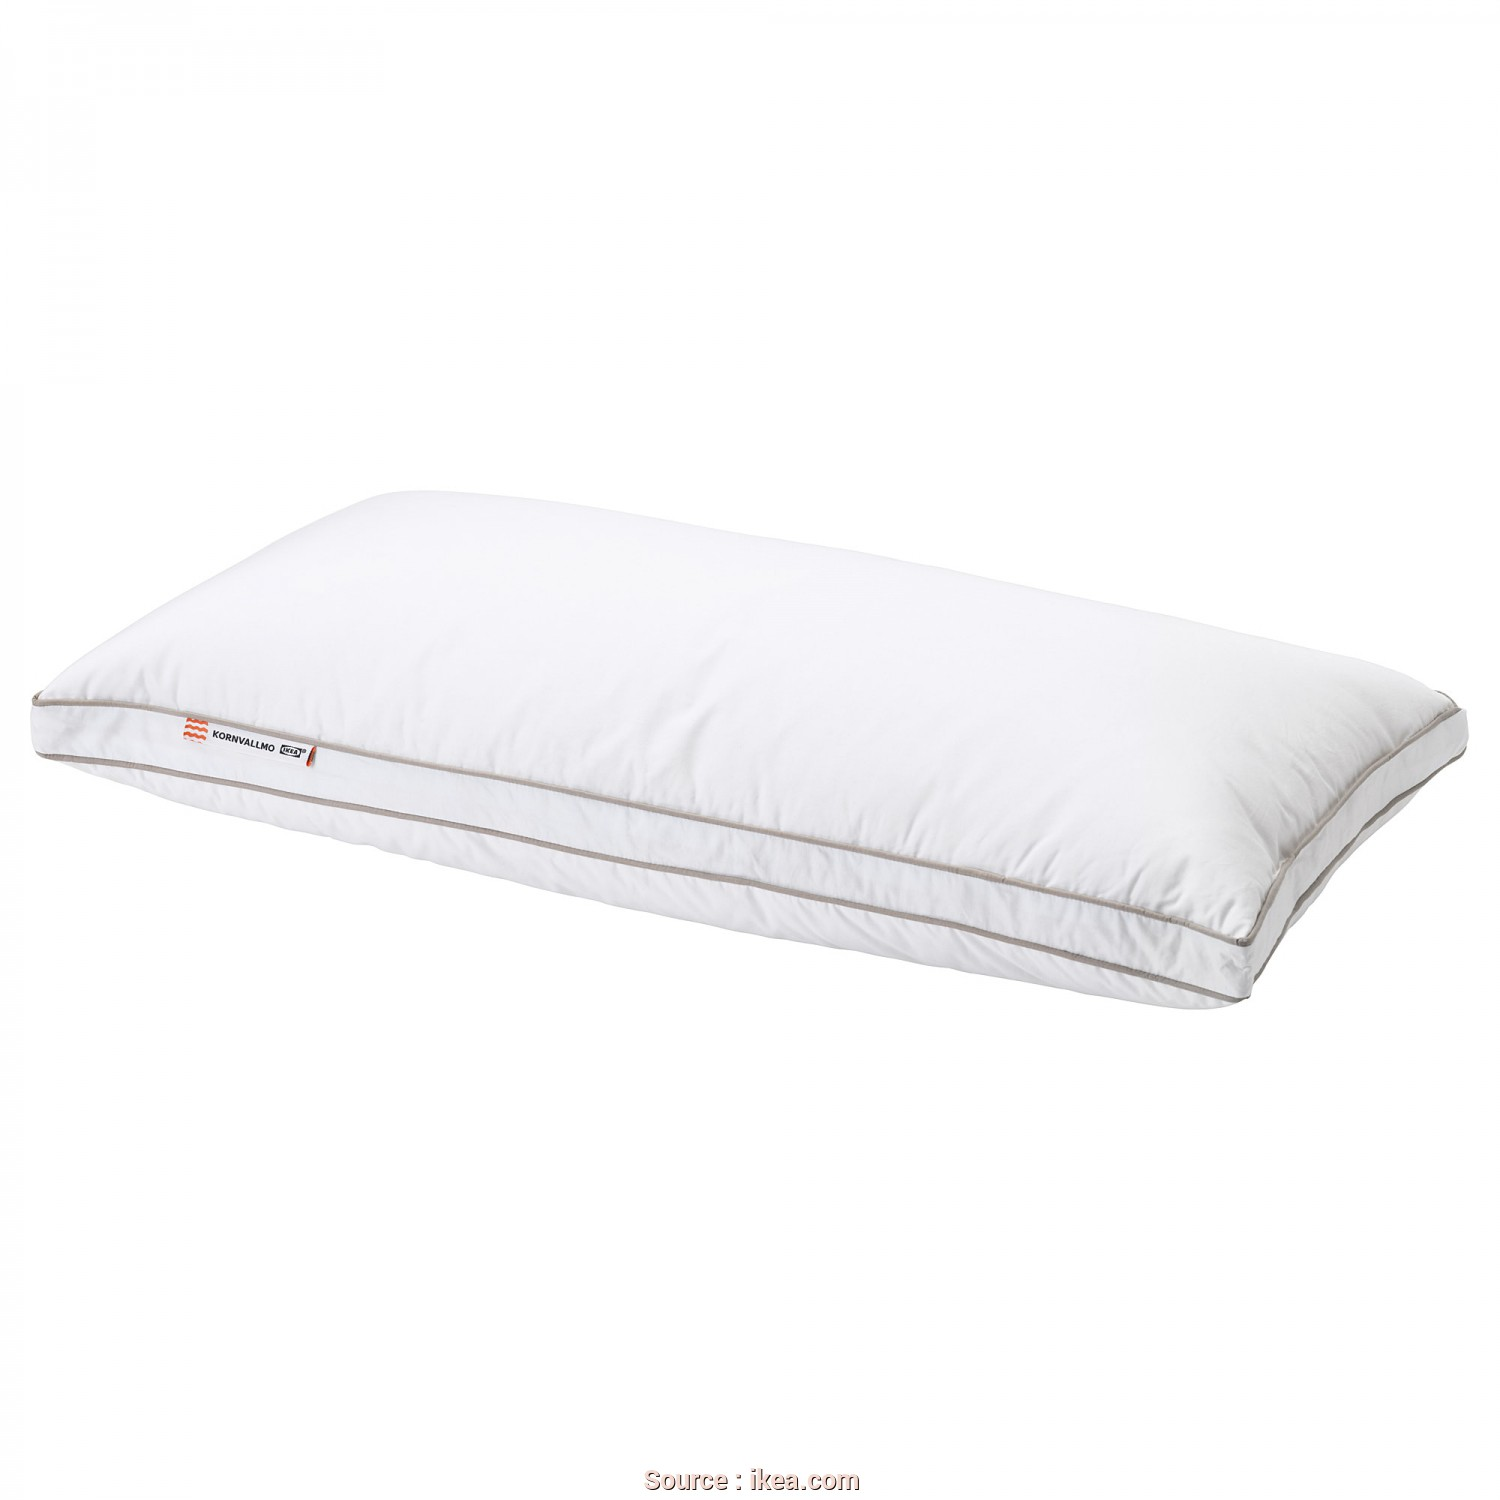 Ikea Cuscino Slan, Affascinante IKEA KORNVALLMO Pillow, Softer A Soft Pillow In Cotton Sateen, Filled With Duck Down